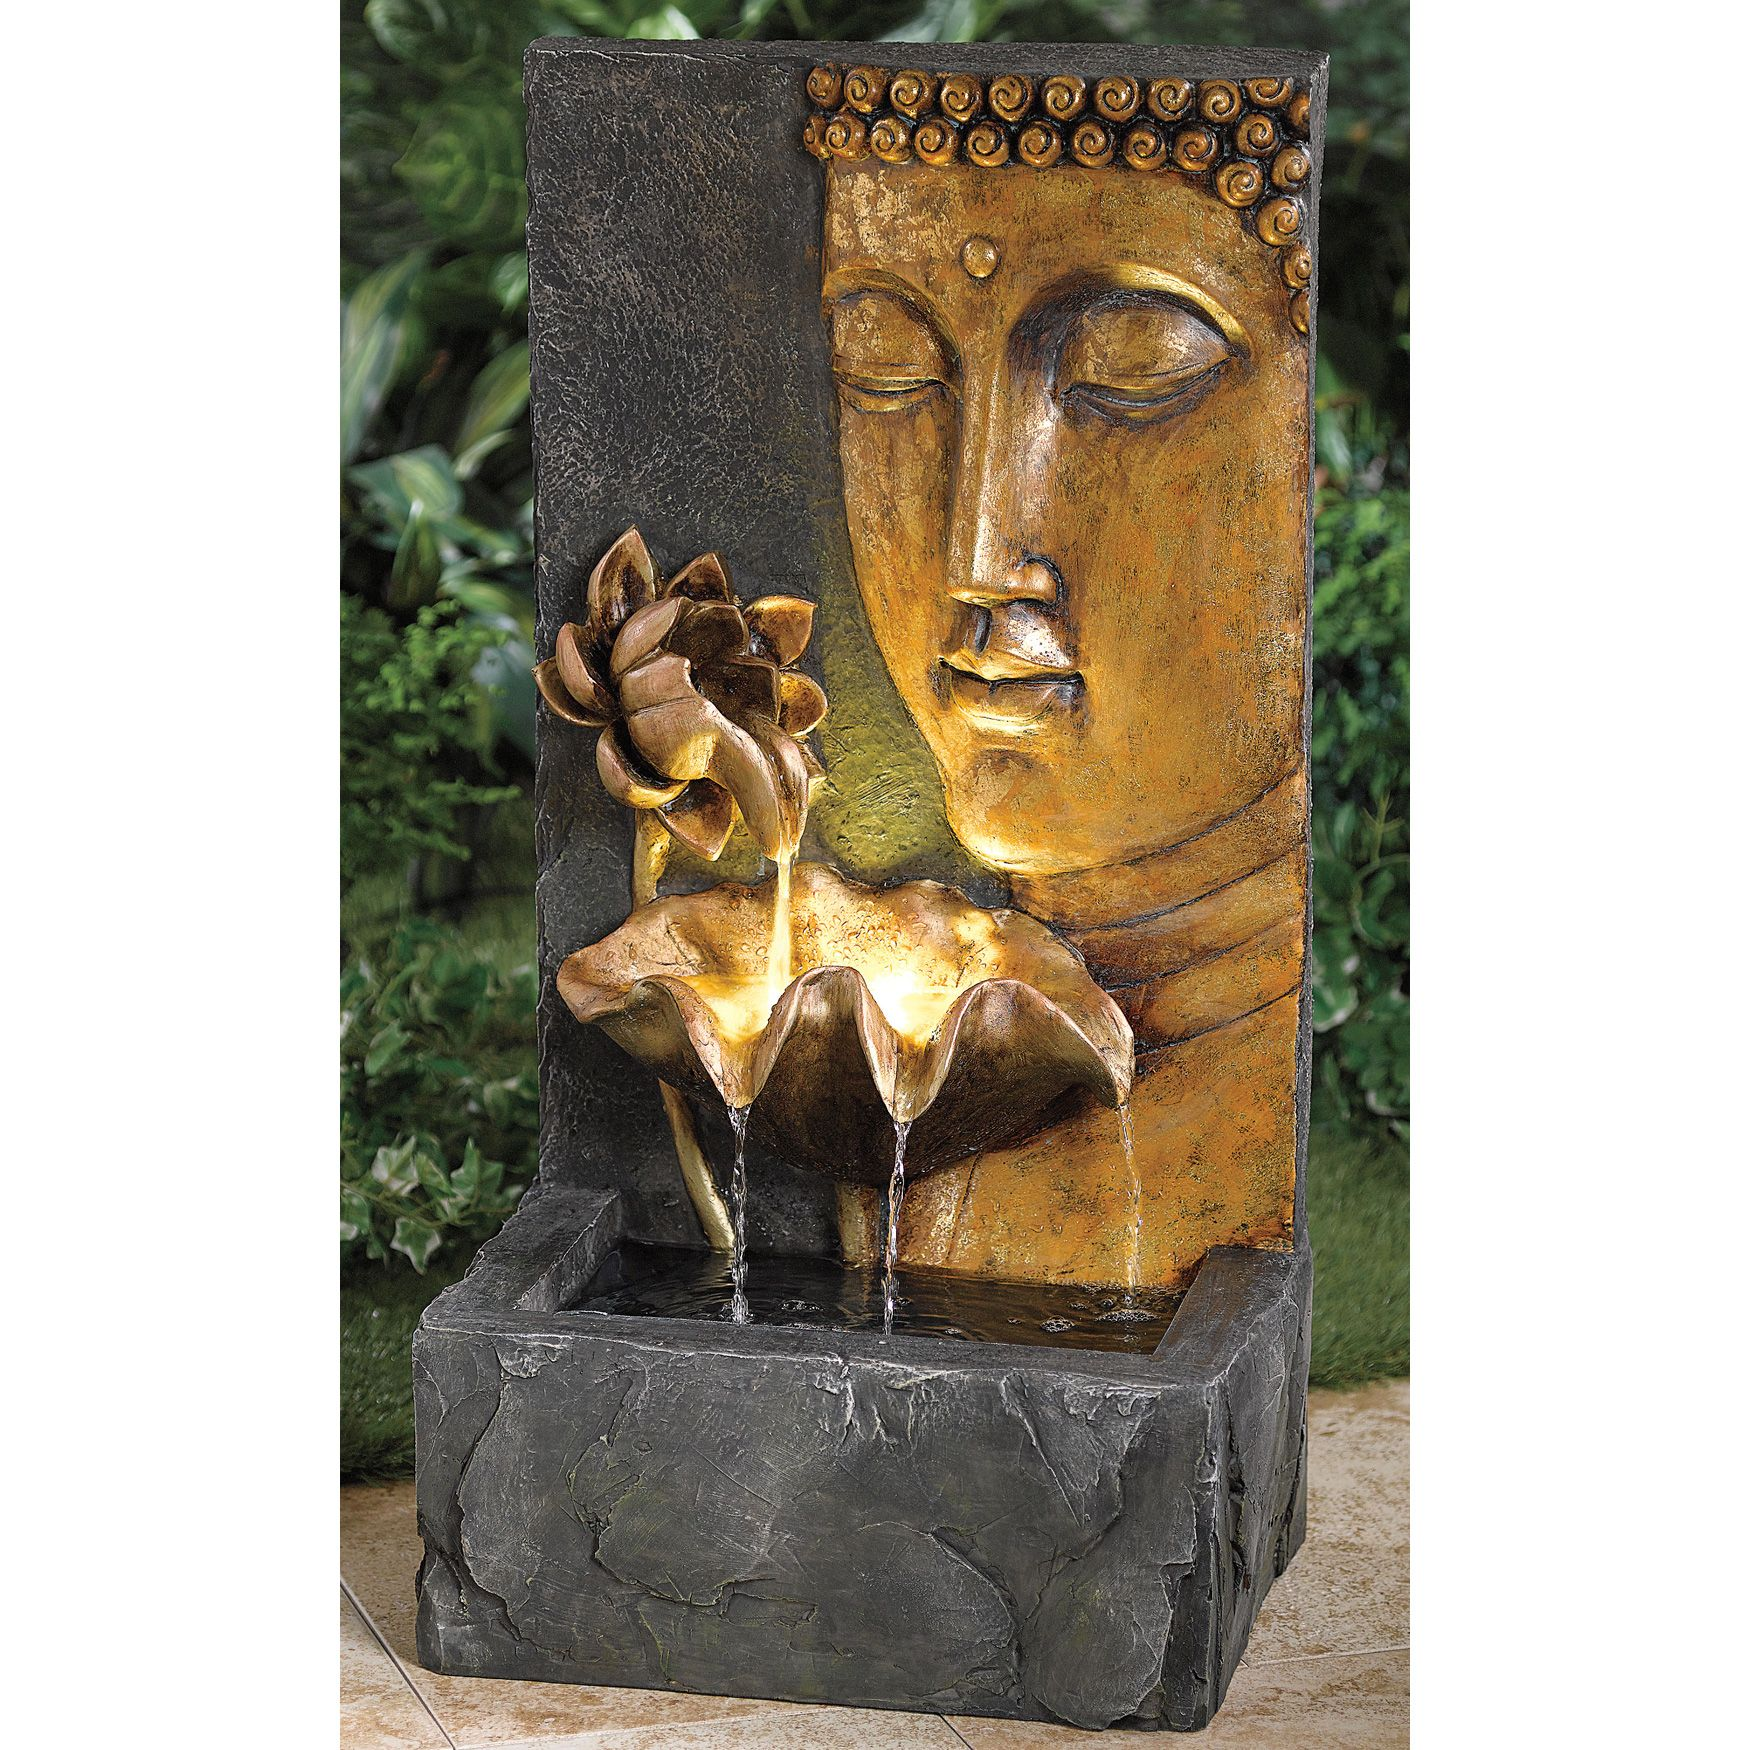 Hand Painted Buddha Face Fountain Fountains Outdoor Indoor